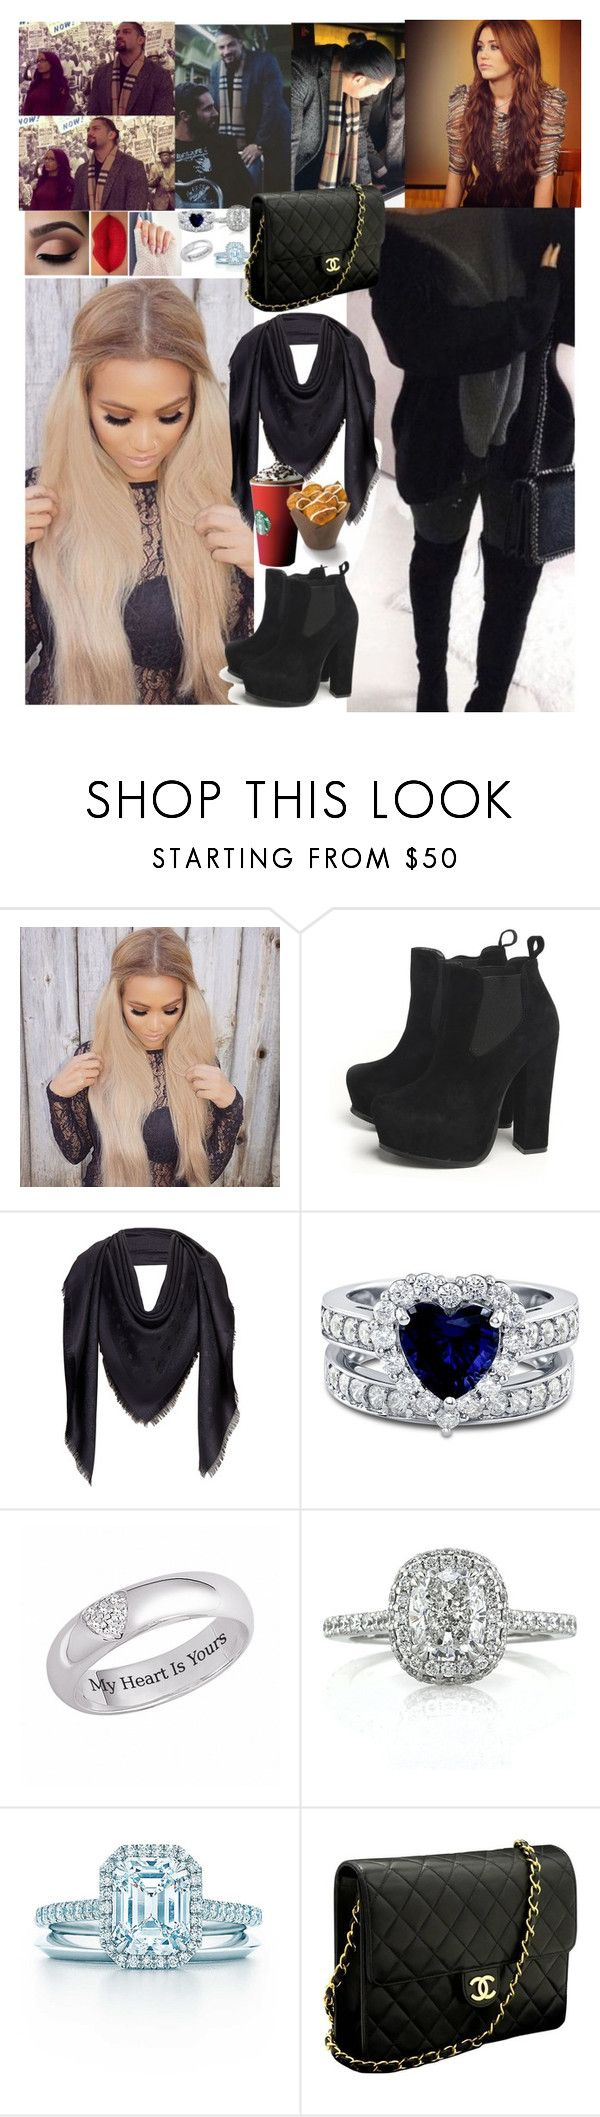 """""""Visiting the NCR Museum 💖Carola💖"""" by carolalink ❤ liked on Polyvore featuring Religion Clothing, AX Paris, MCM, BERRICLE, Mark Broumand and Chanel"""